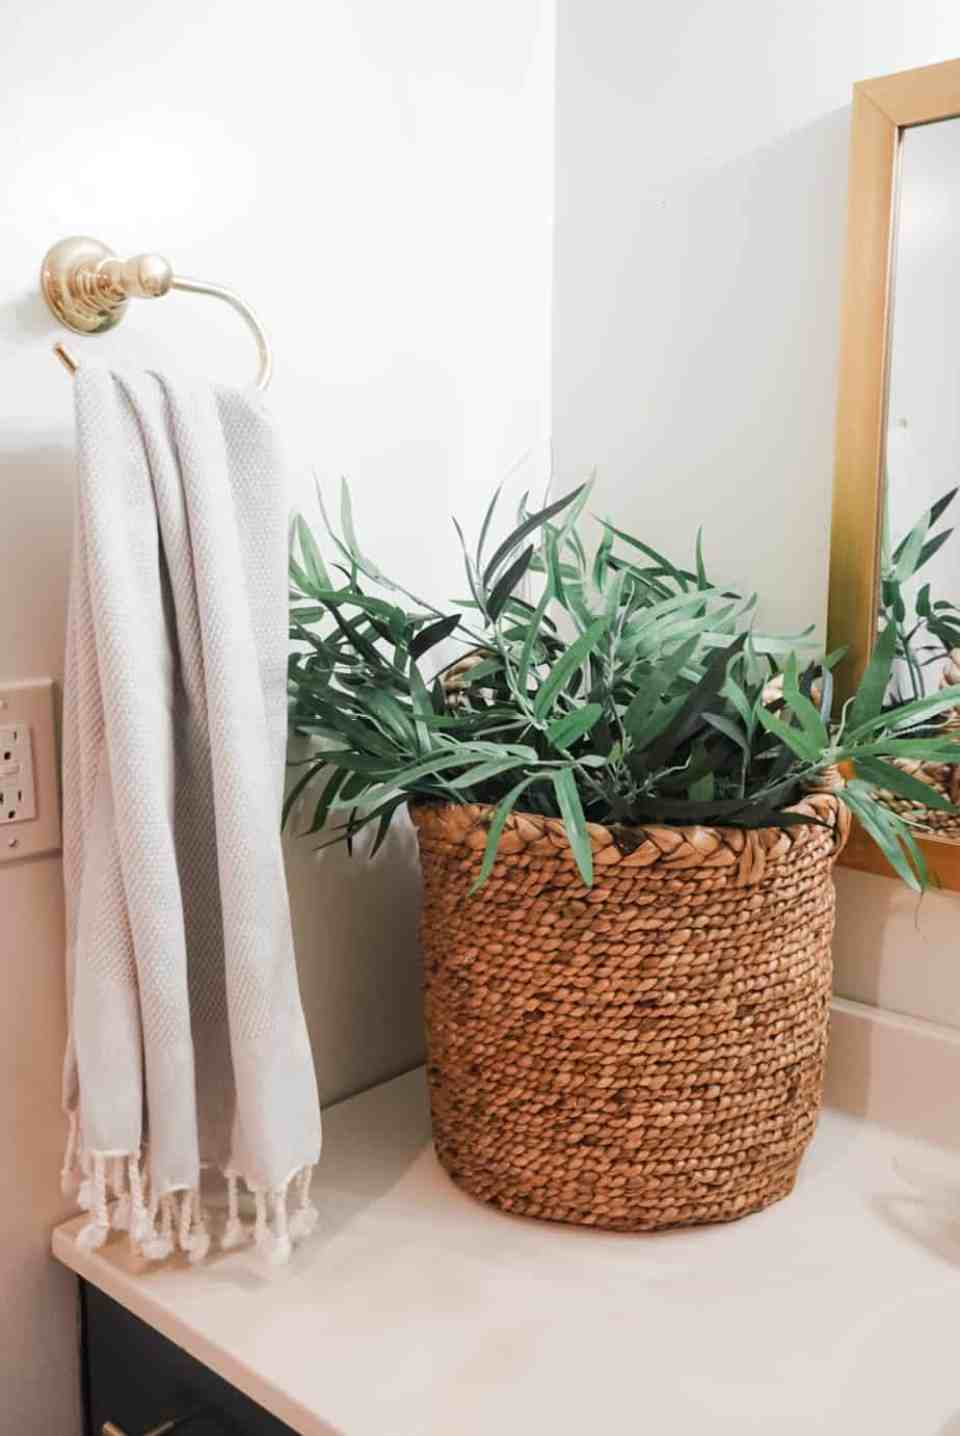 There is a basket filled with a plant on the bathroom counter.